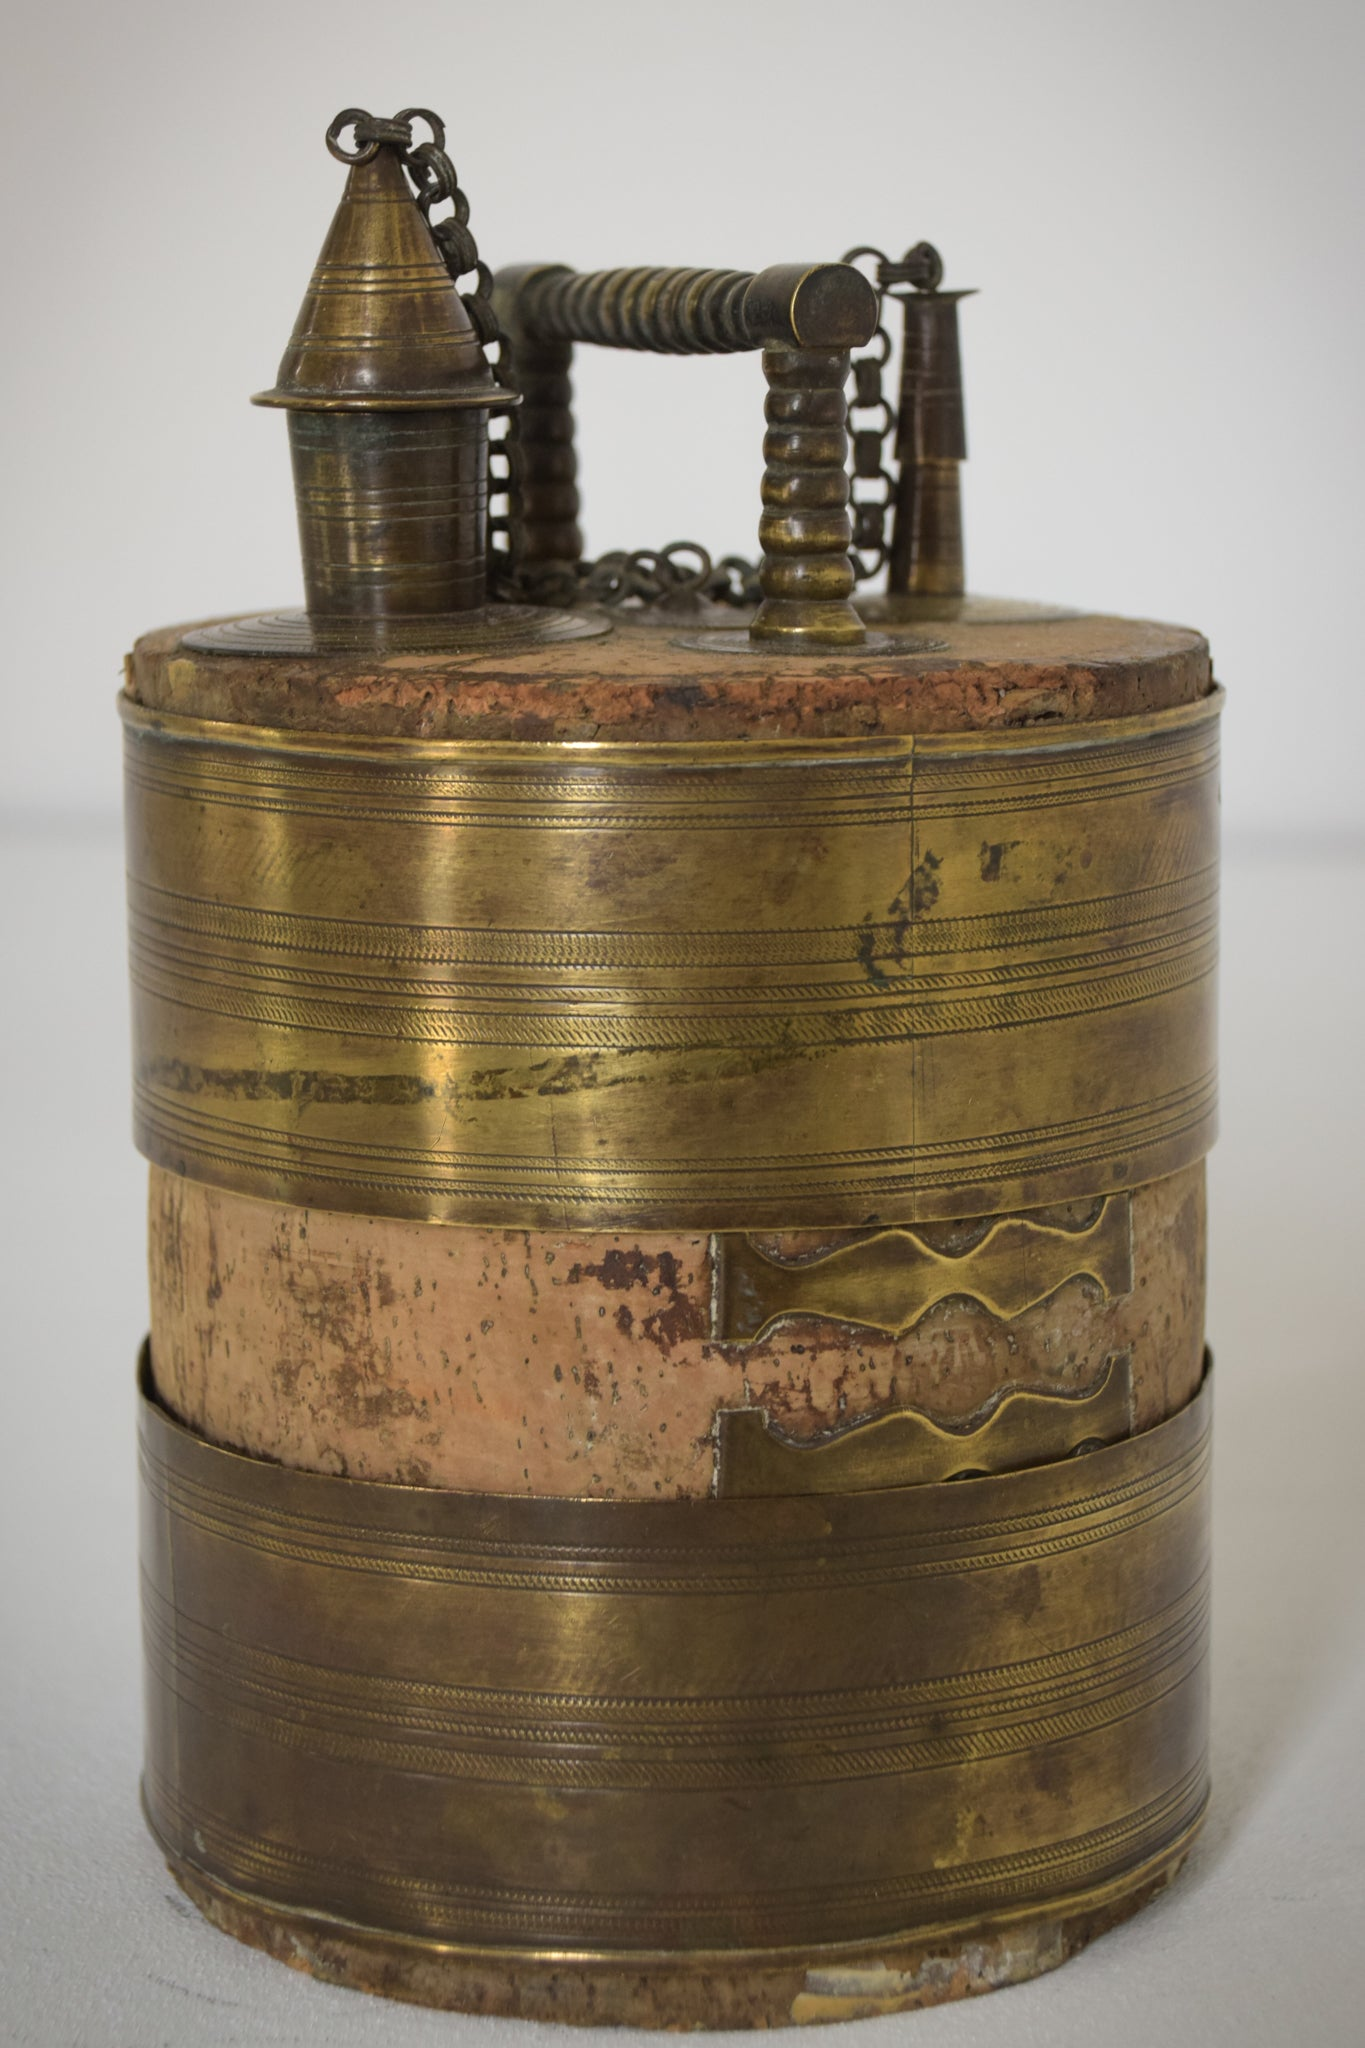 Antique Olive or Wine Barrel